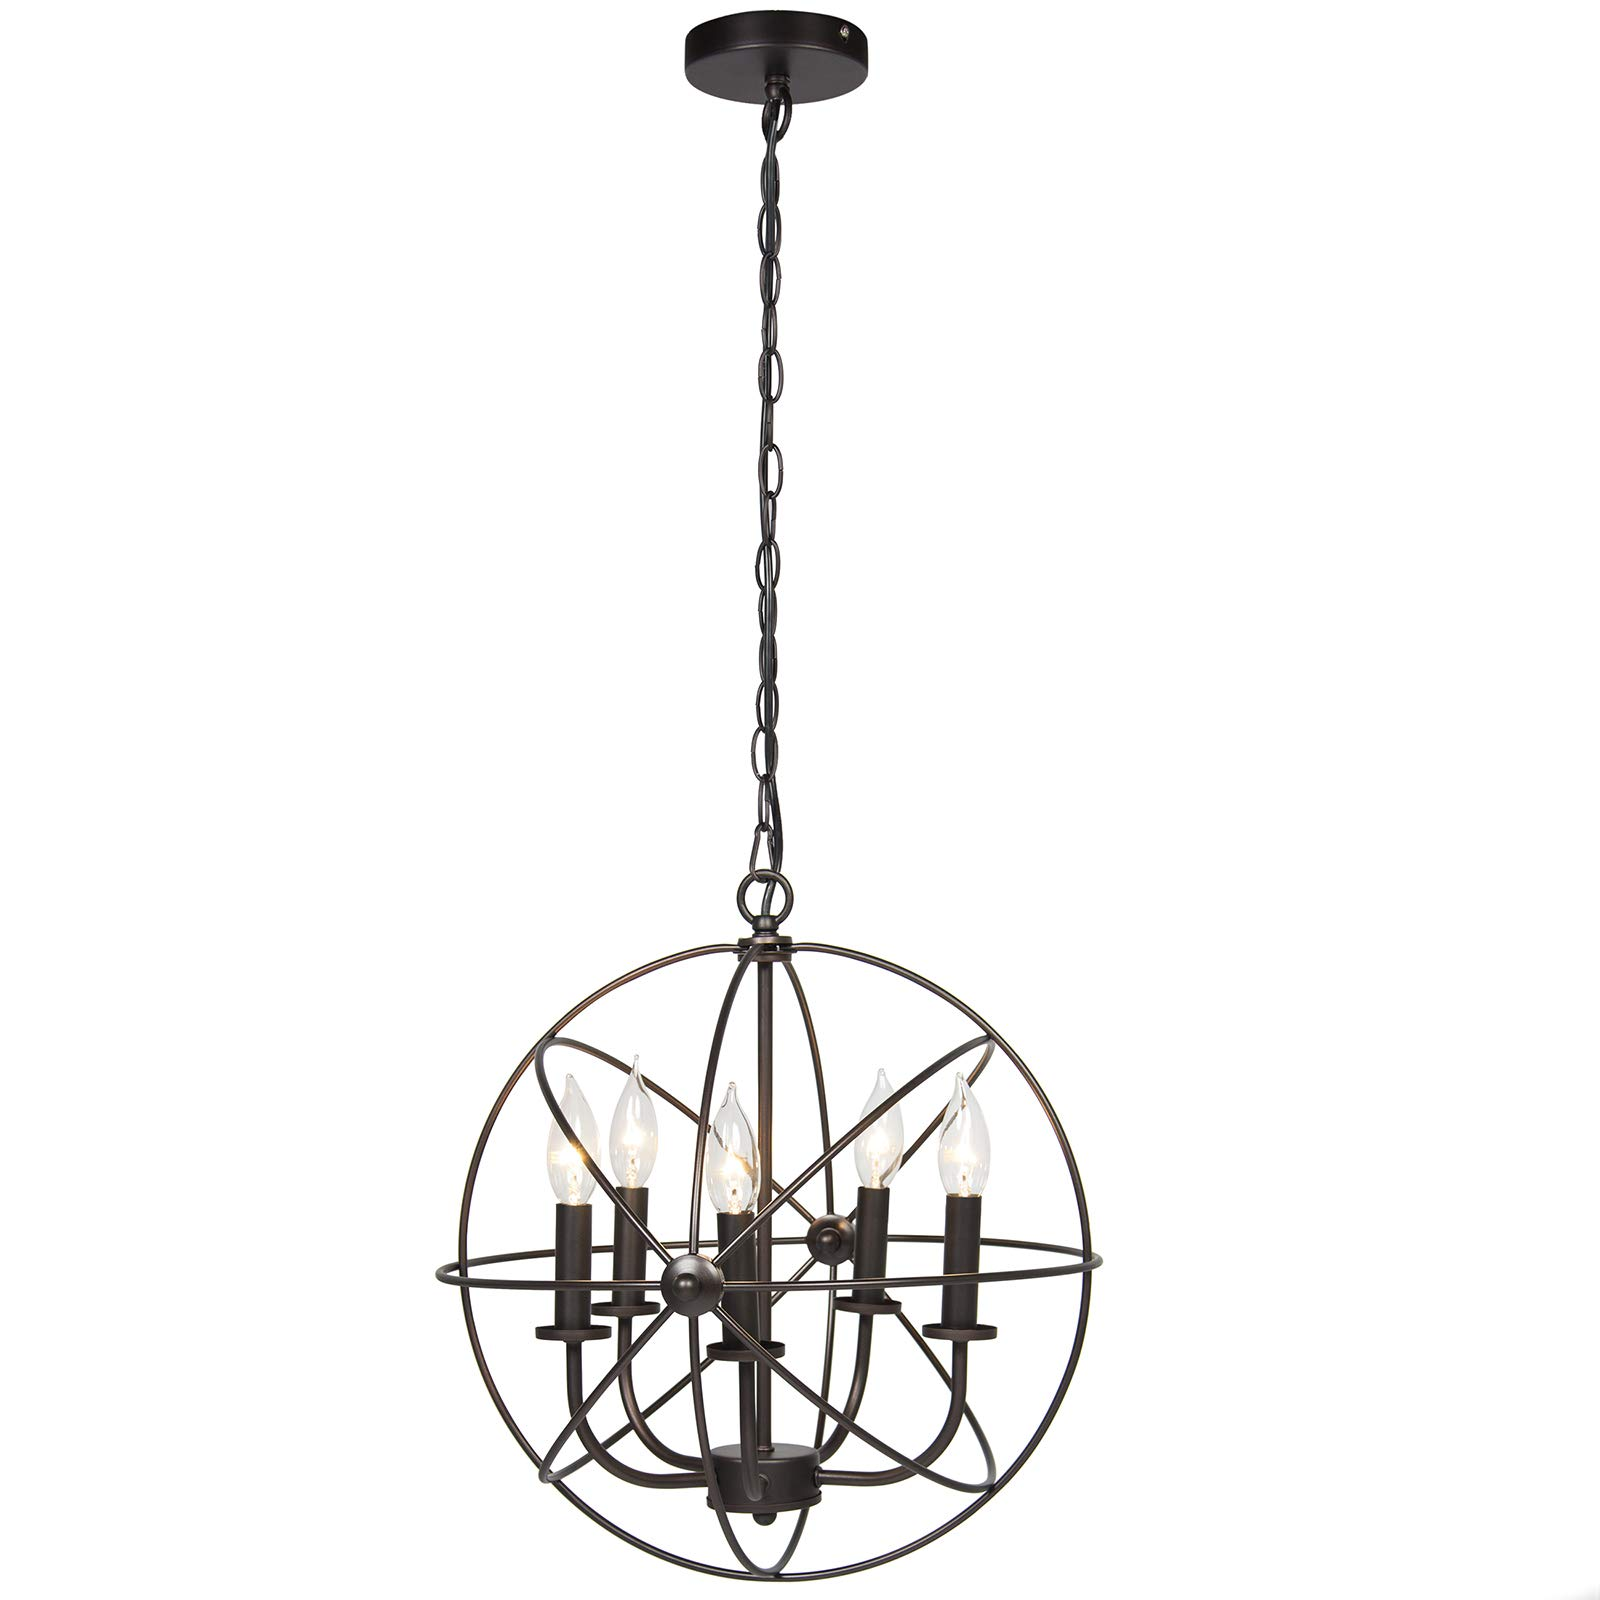 Industrial Vintage Lighting Ceiling Chandelier 5 Lights Metal Hanging Fixture by Best Choice Products (Image #2)